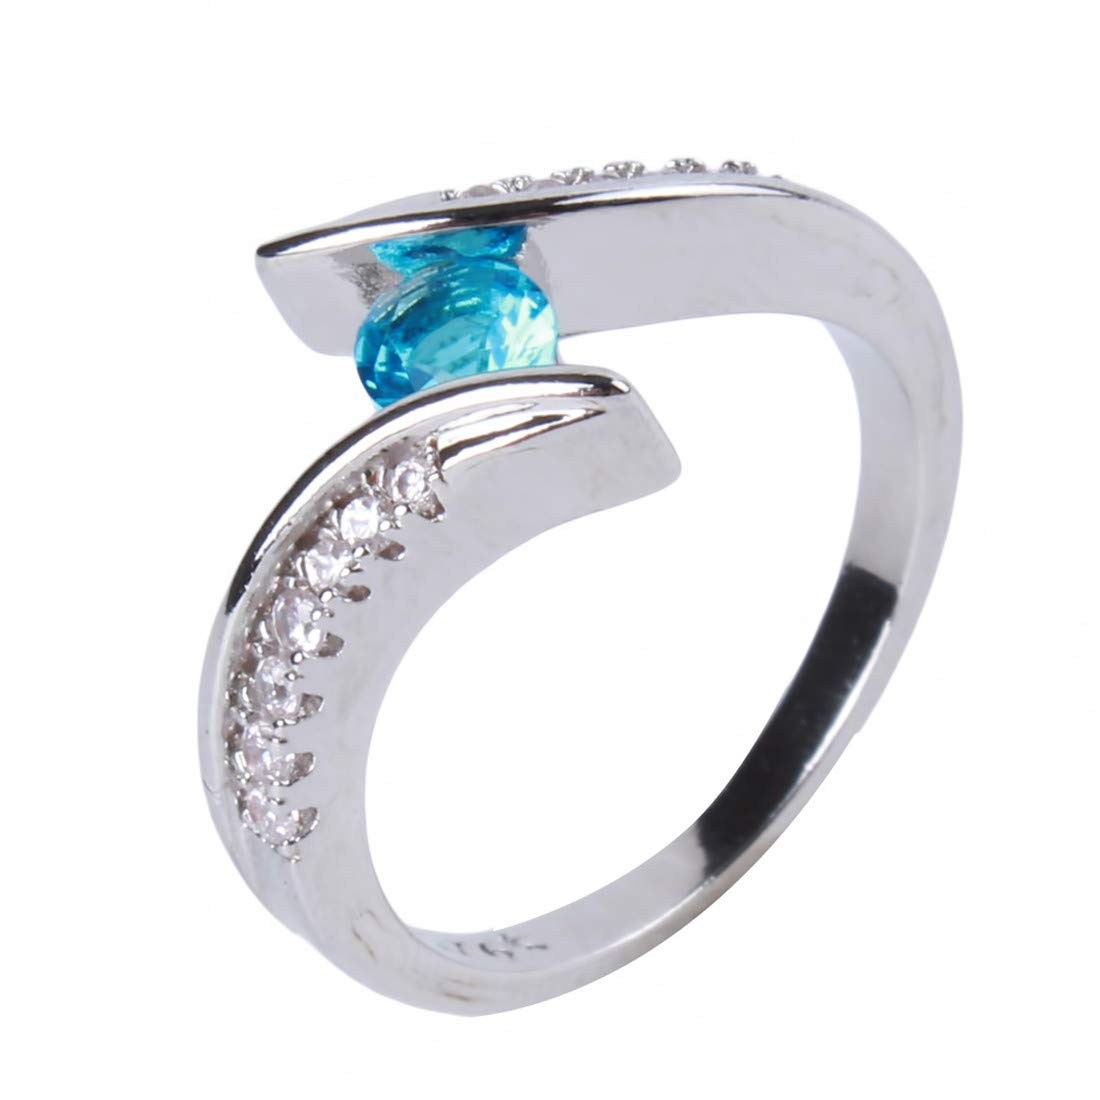 Yingwei VWH Inlay Round Crystal Ring Engagement Band for Women Girls Jewelry Accessories Blue Size 6